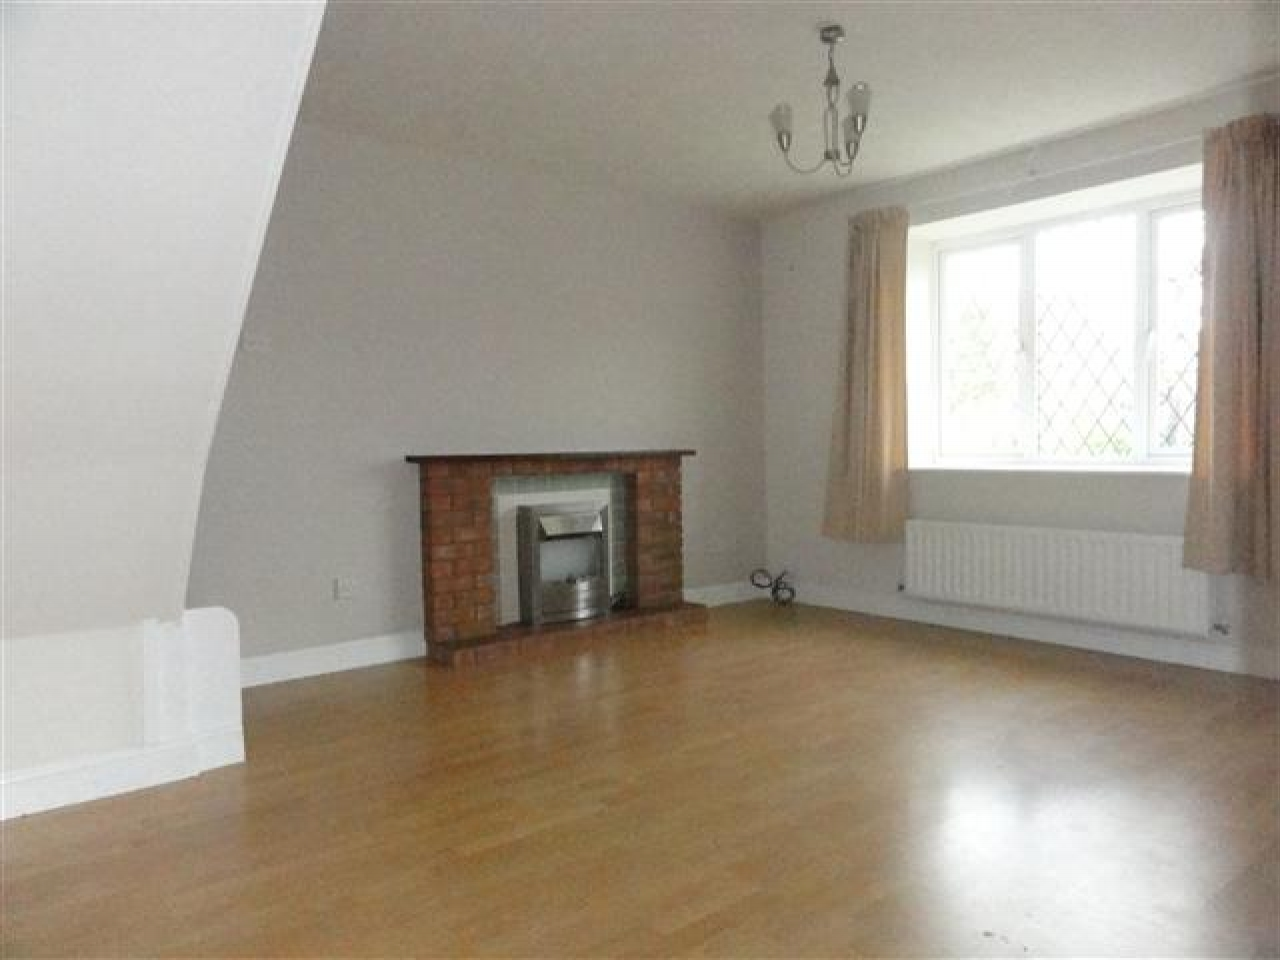 2 Bed Semi-detached House For Sale - Photograph 2